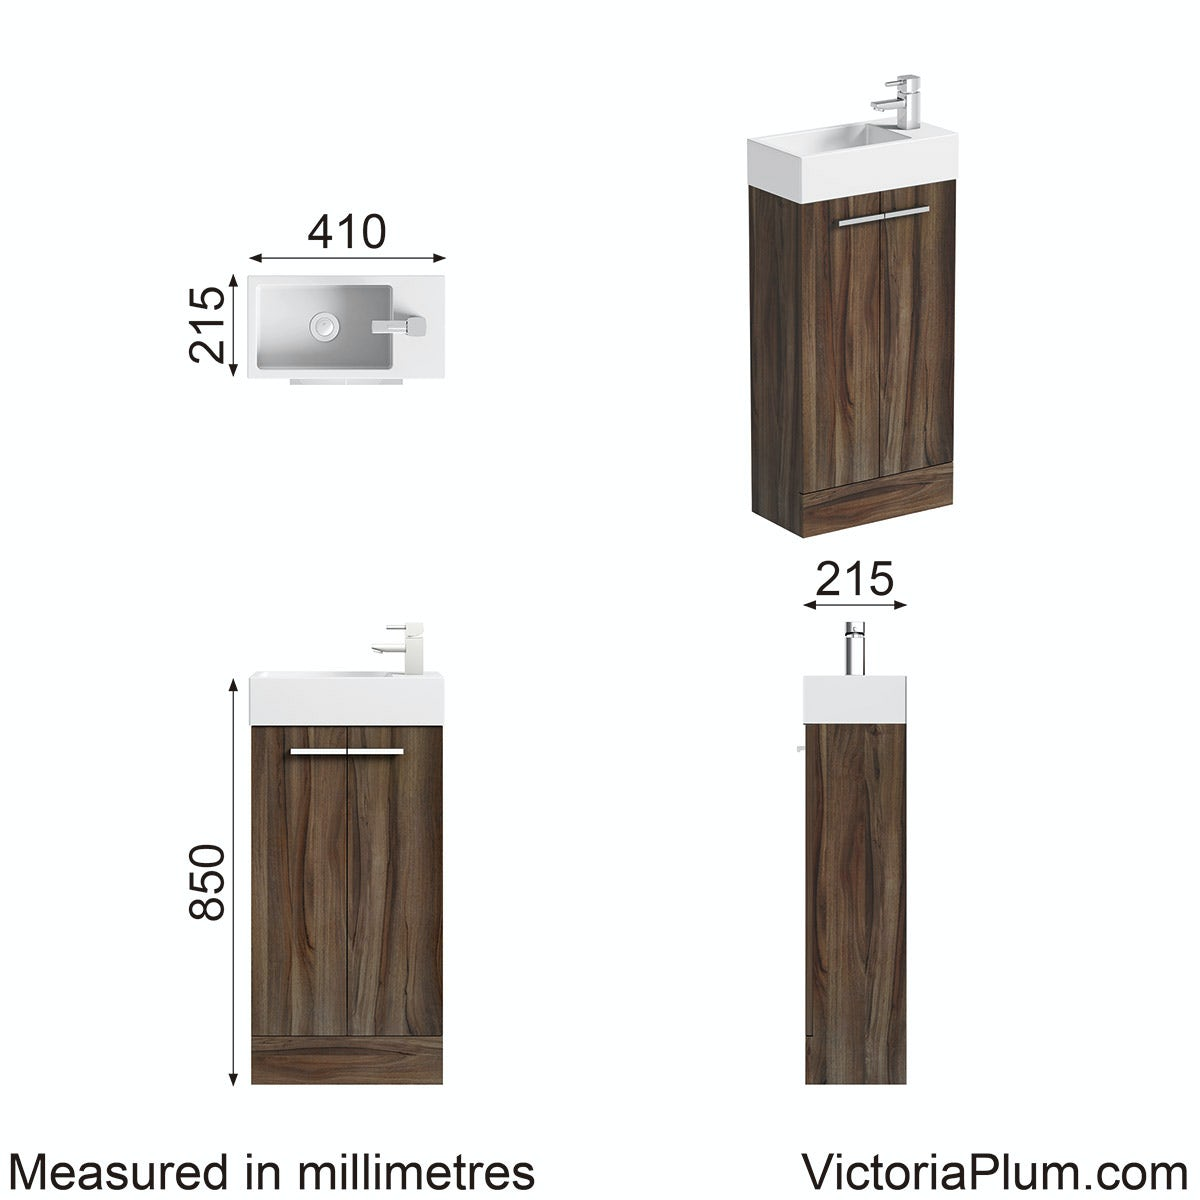 Dimensions for Orchard Walnut cloakroom unit with resin basin 410mm